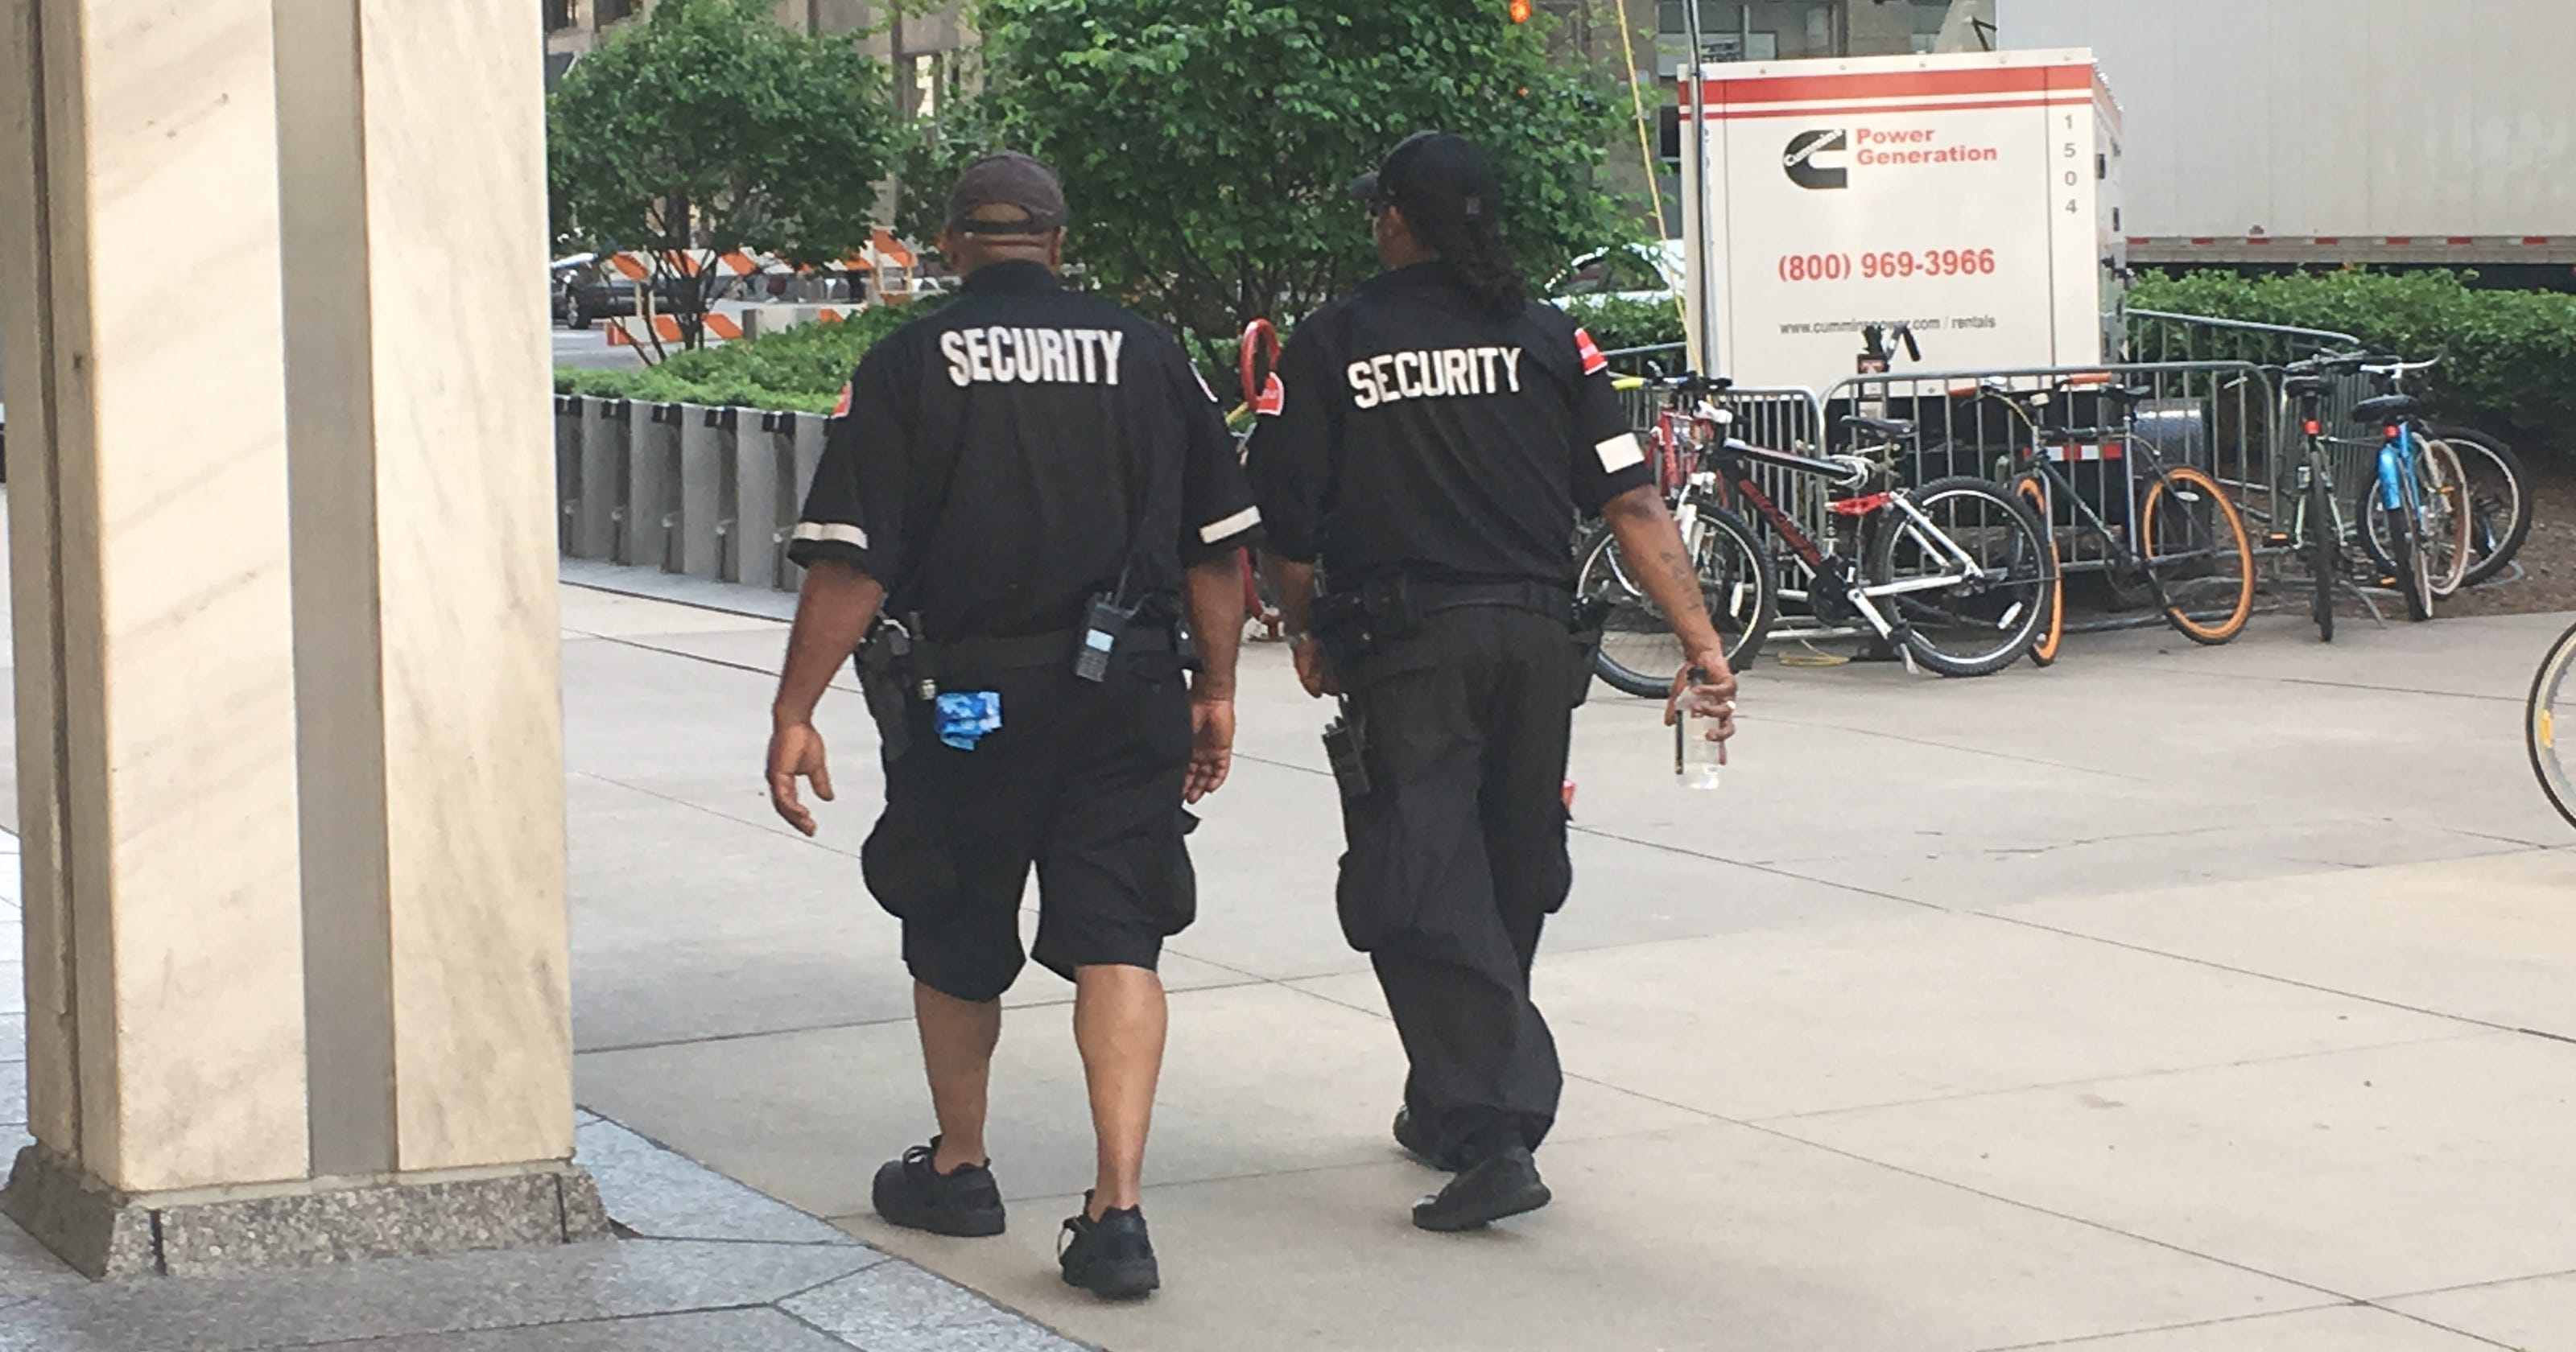 As Detroit grows, so does the security industry